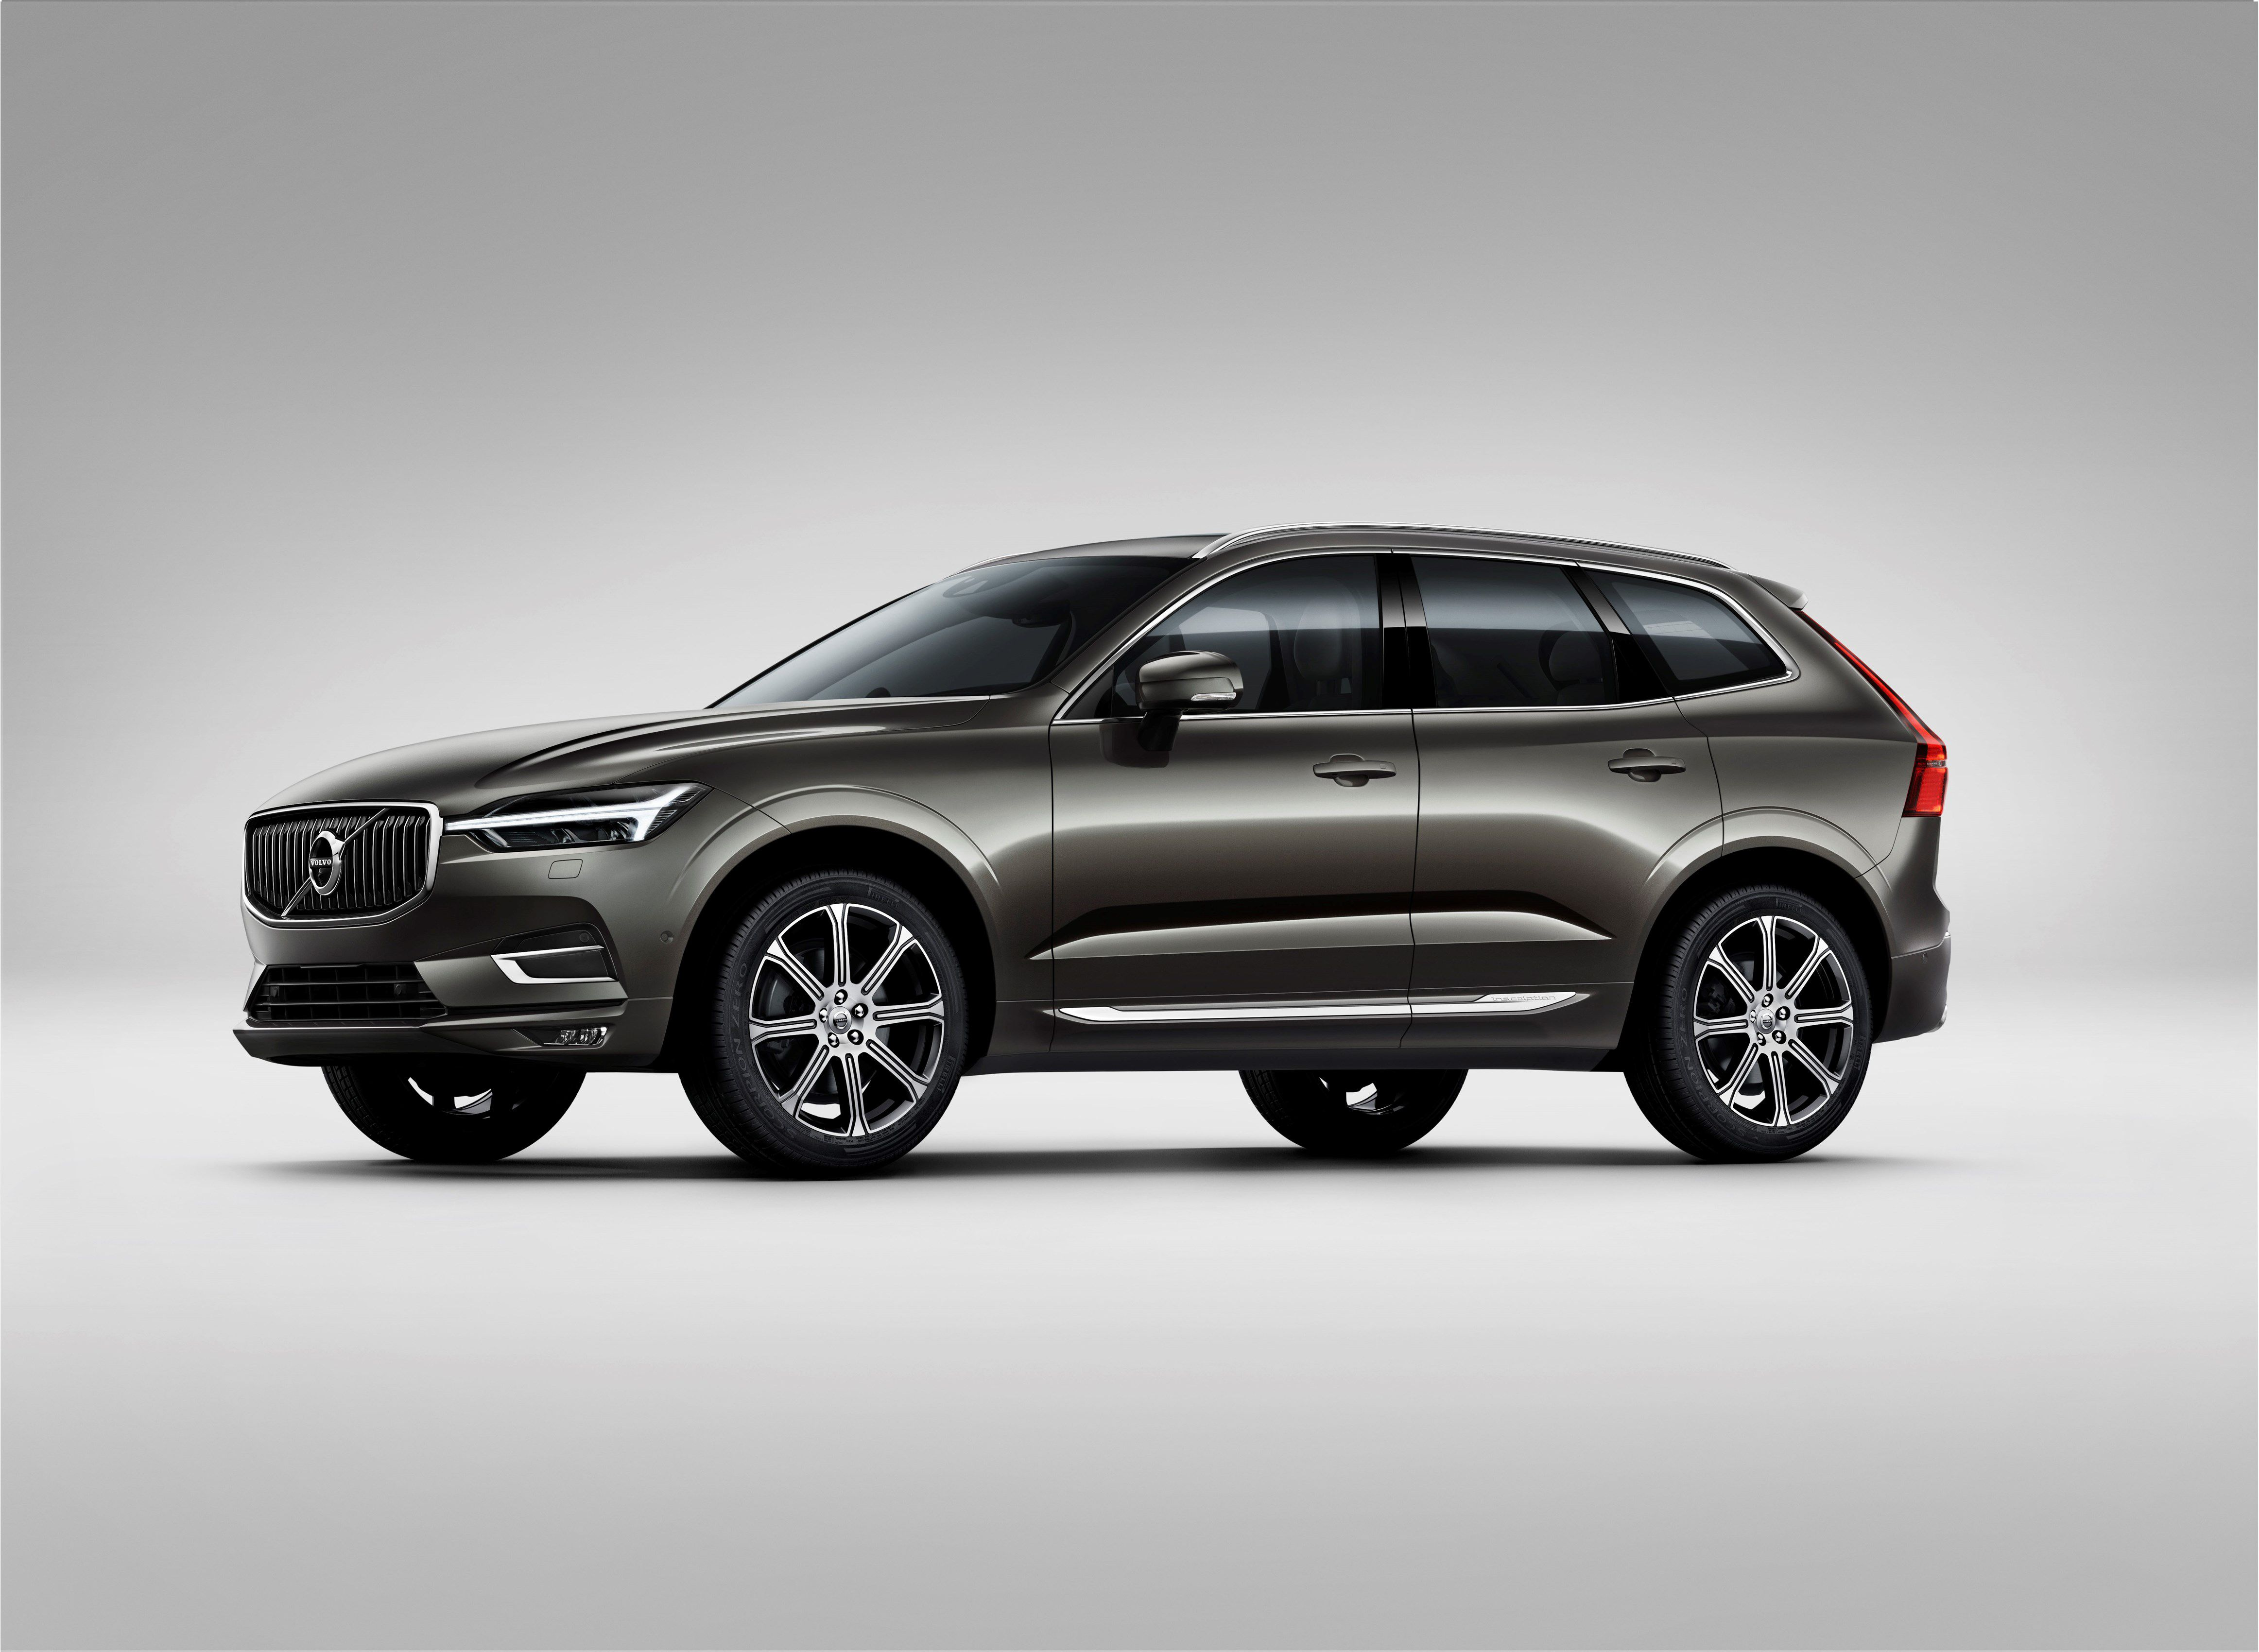 volvo xc60 the new volvo xc60 one of the safest cars ever made rh pinterest com